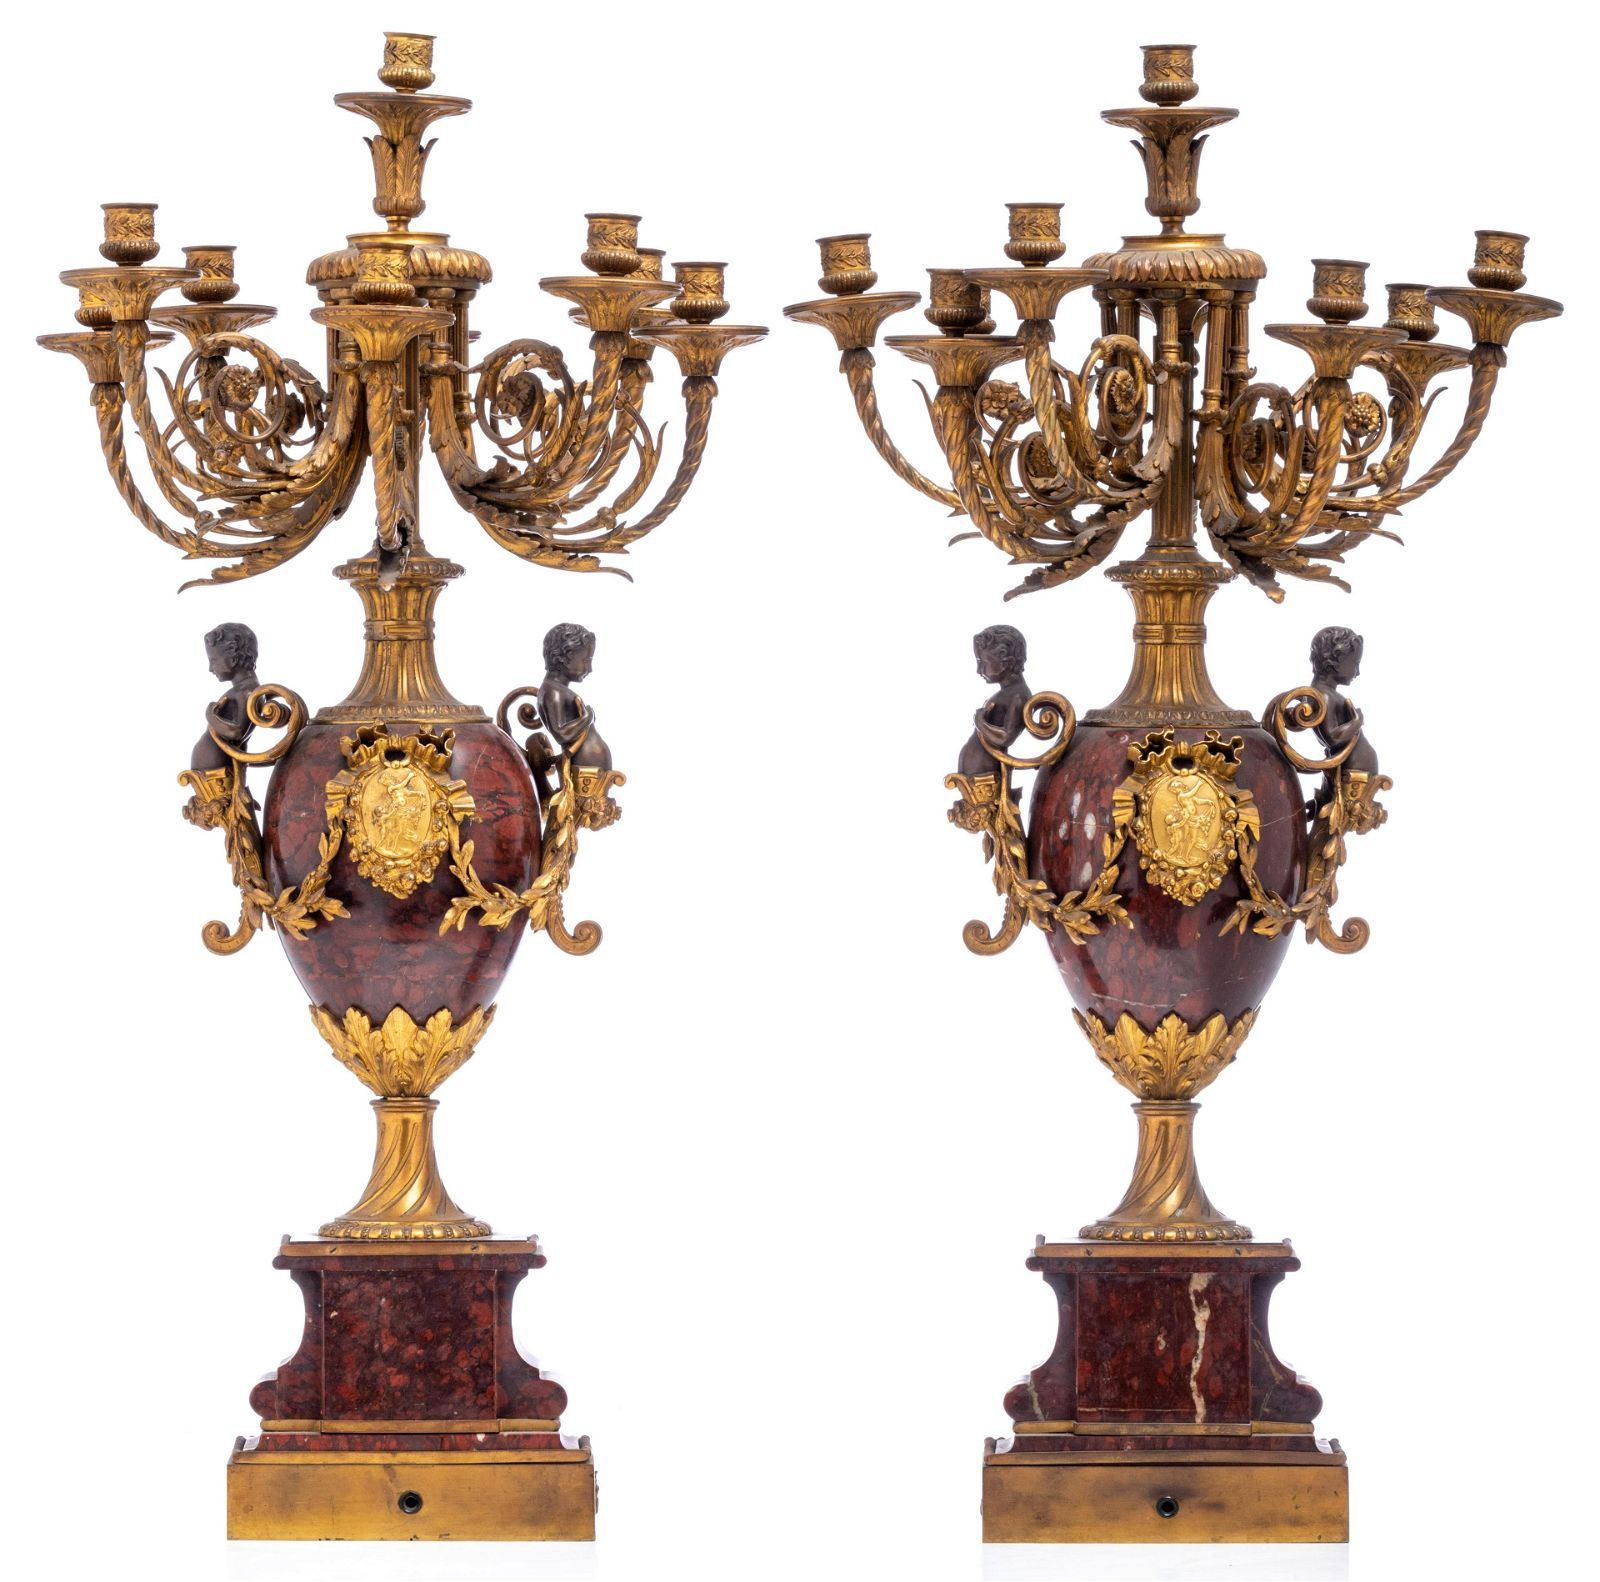 An imposing pair of Neoclassical Napoleon III period